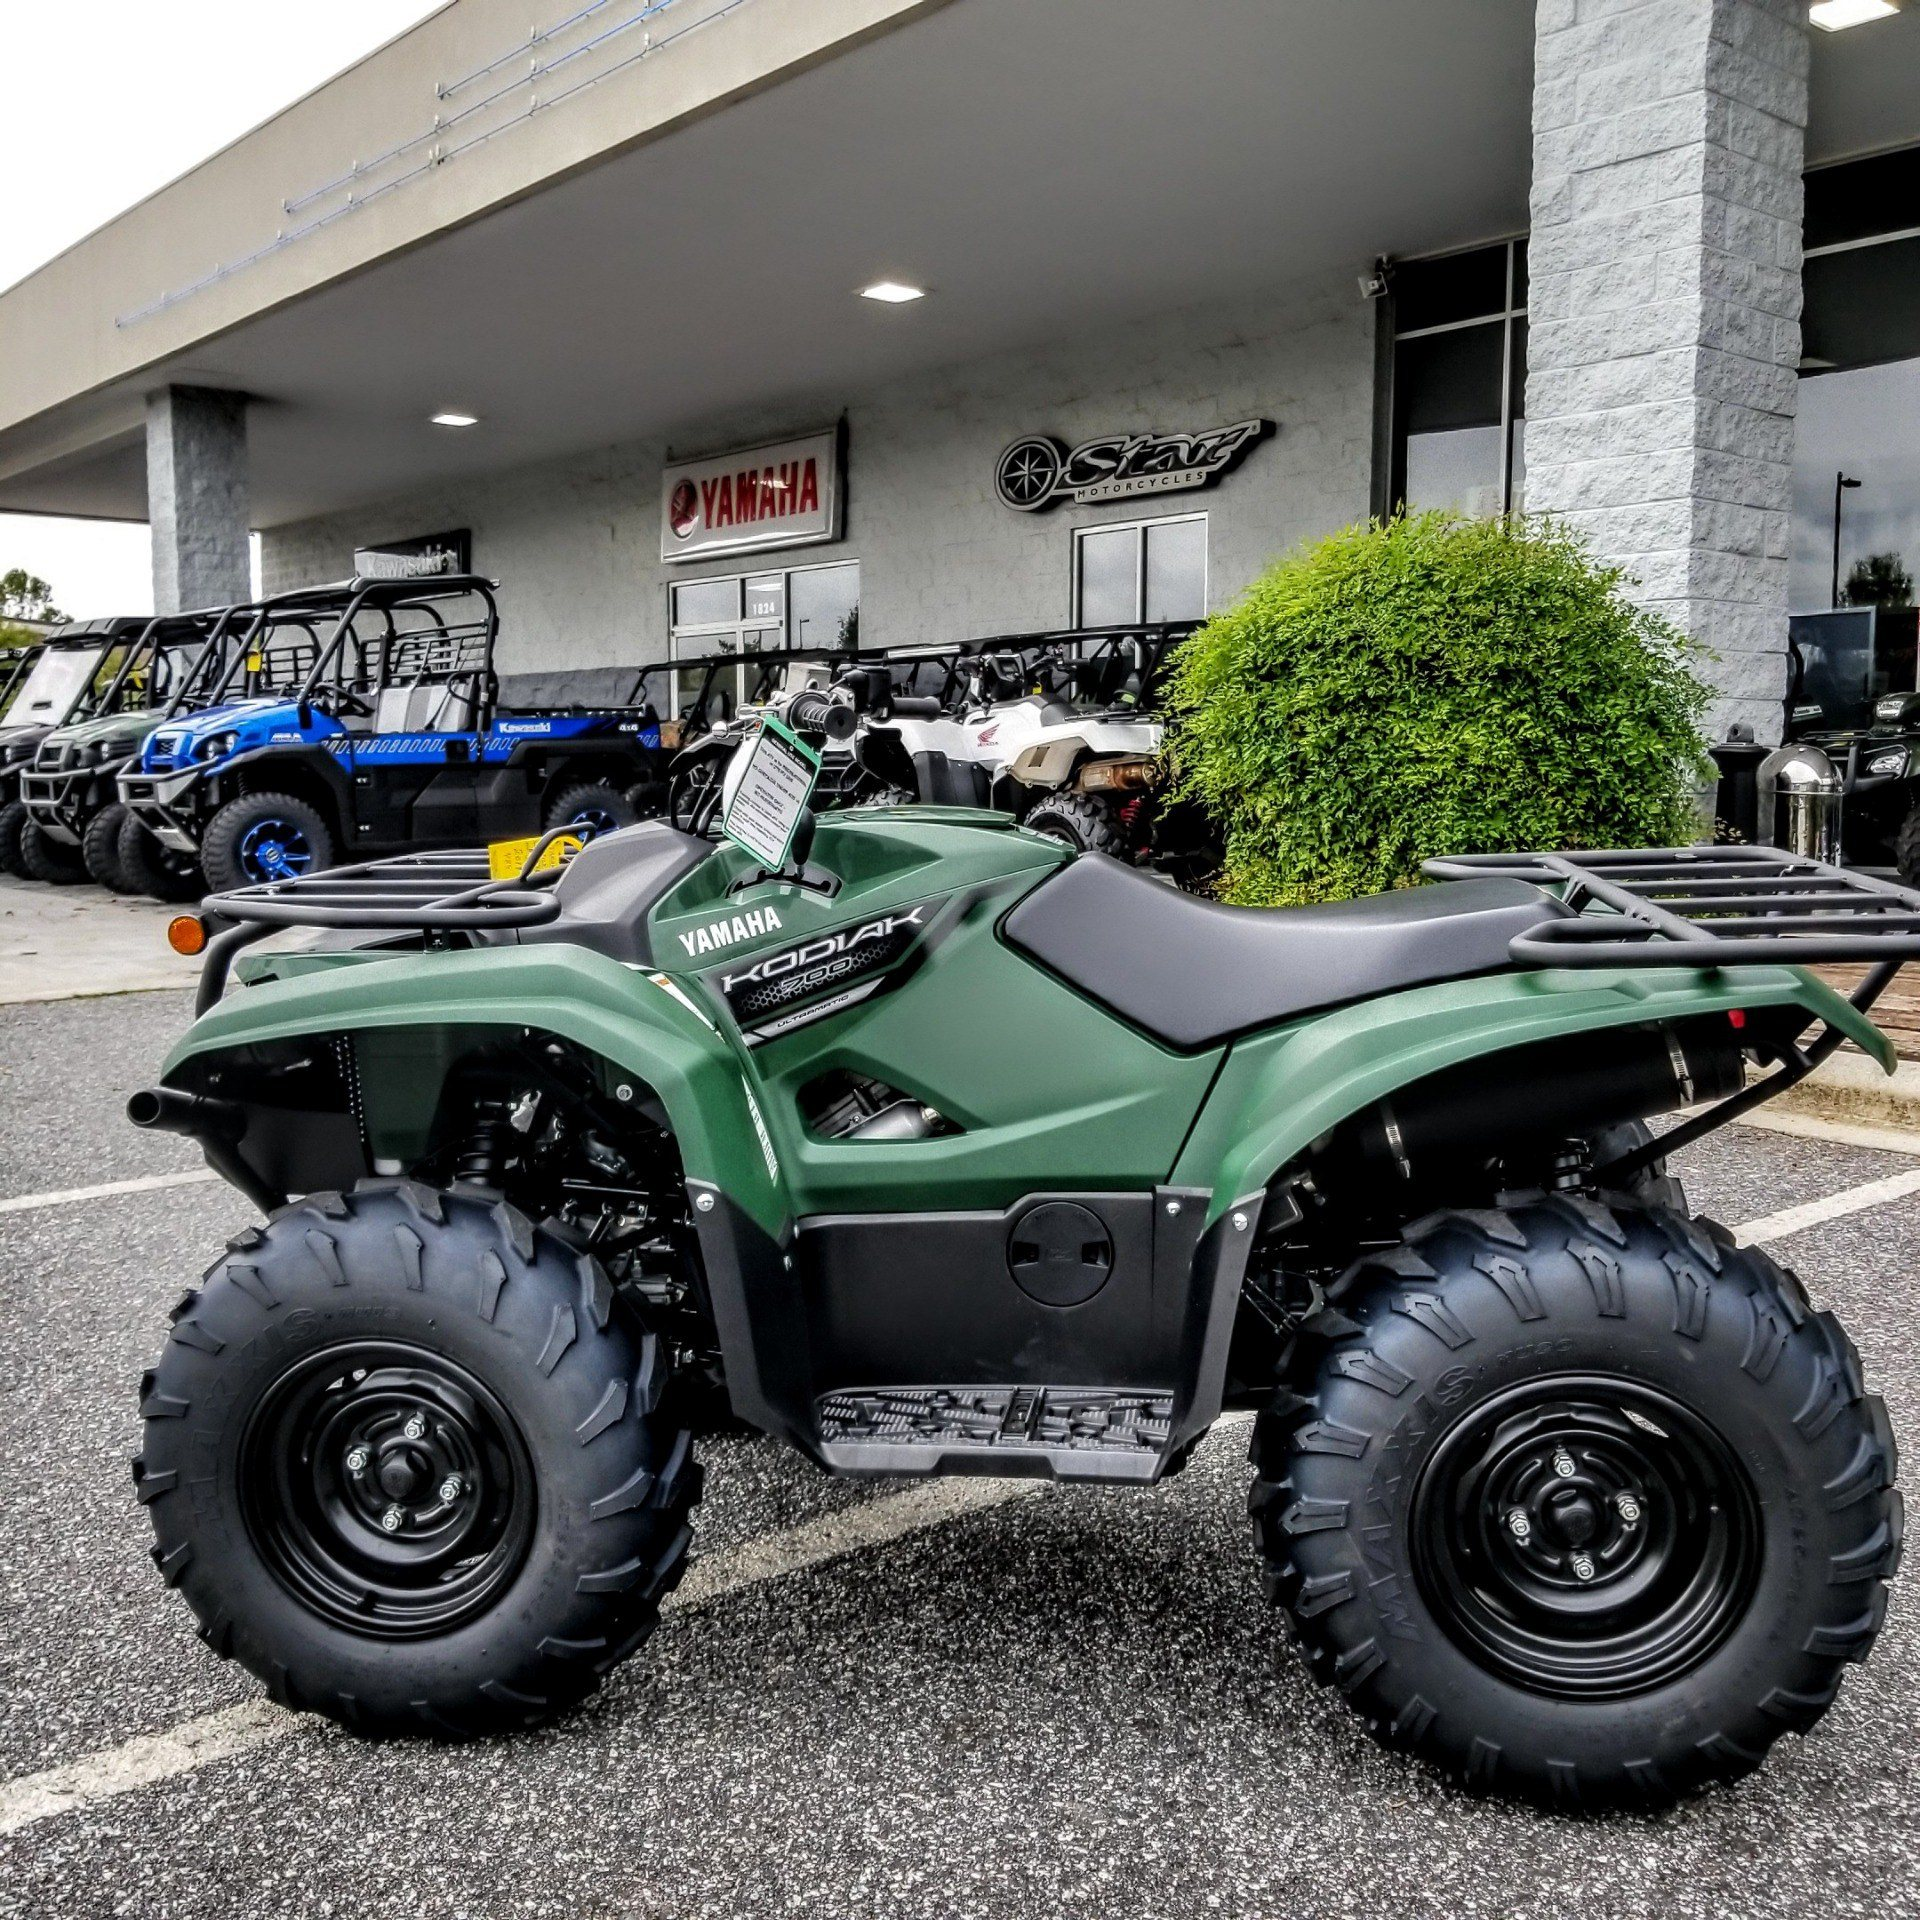 2019 Yamaha Kodiak 700 in Hickory, North Carolina - Photo 4